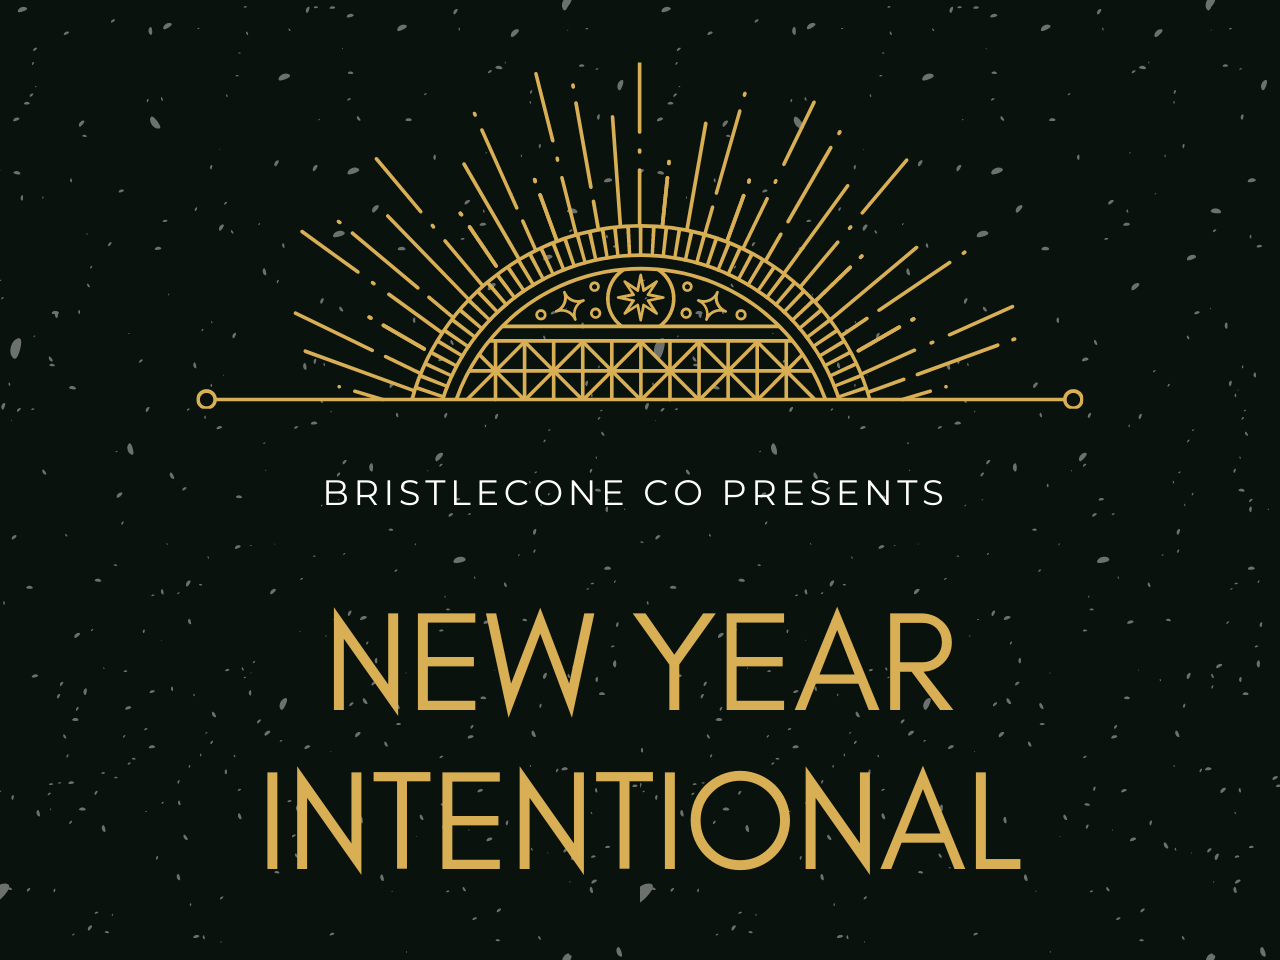 New Year Intentional - Web